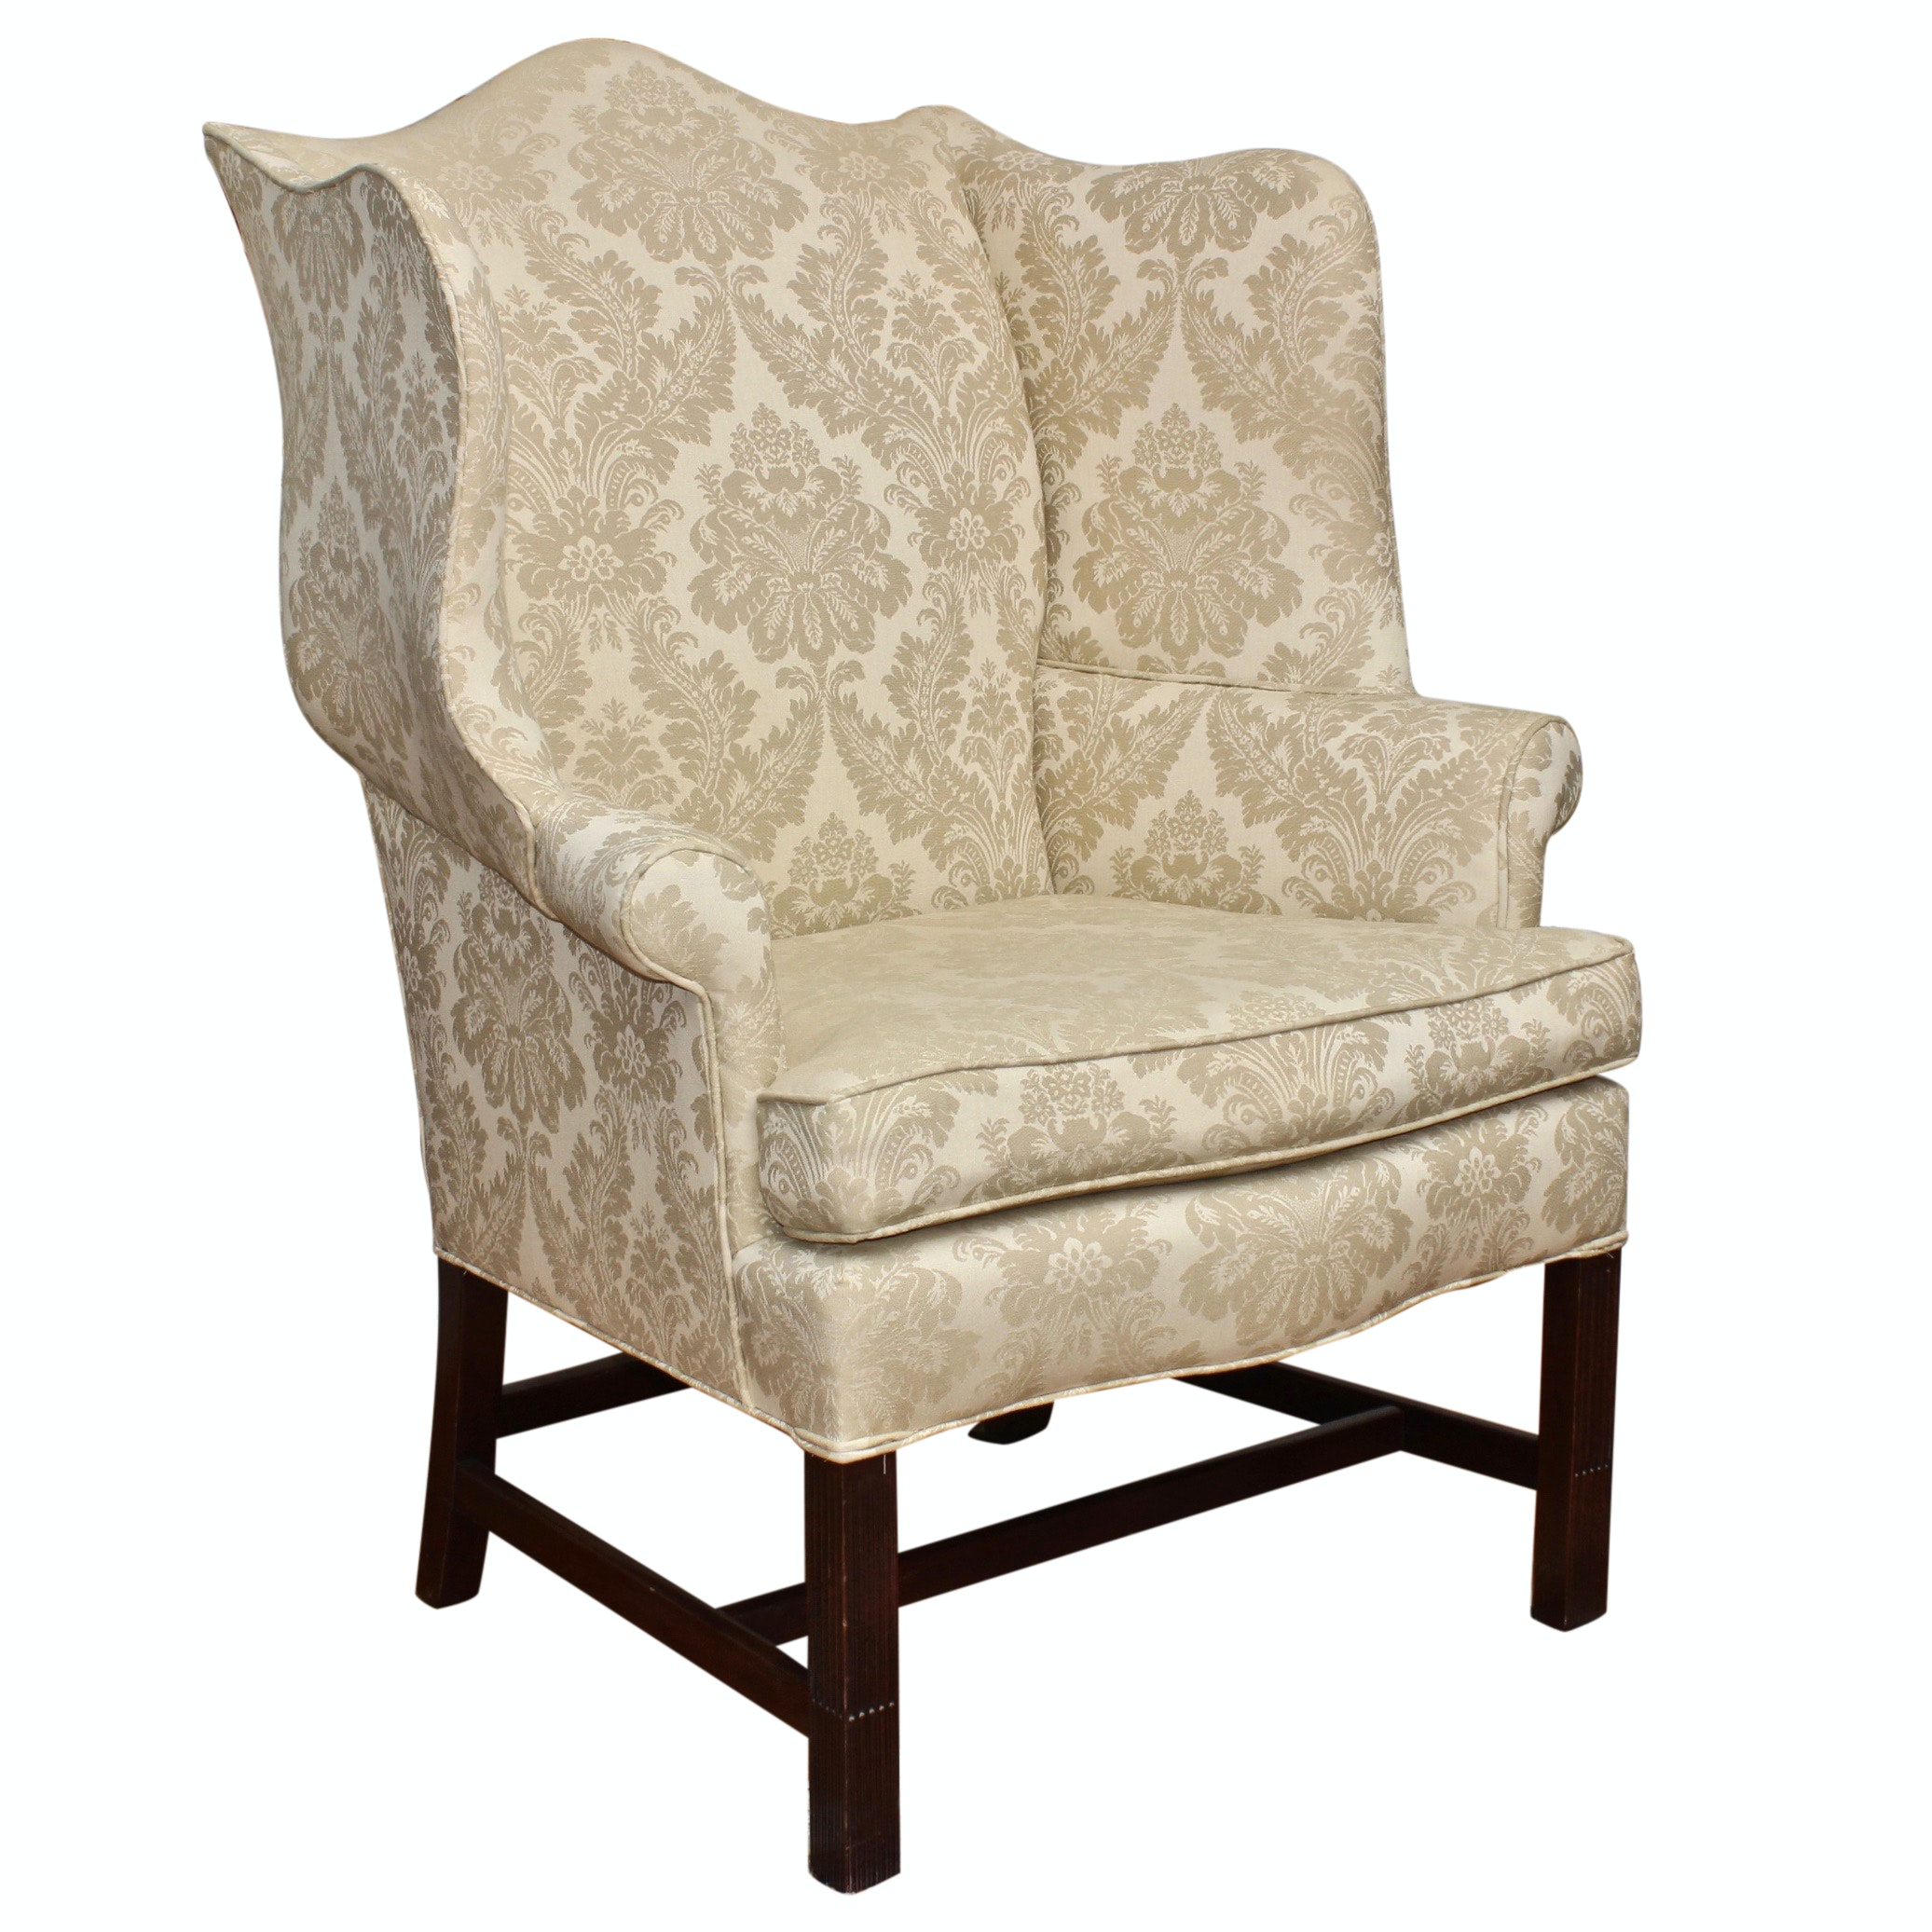 Hickory Chair Company Wingback Chair, Mid 20th Century